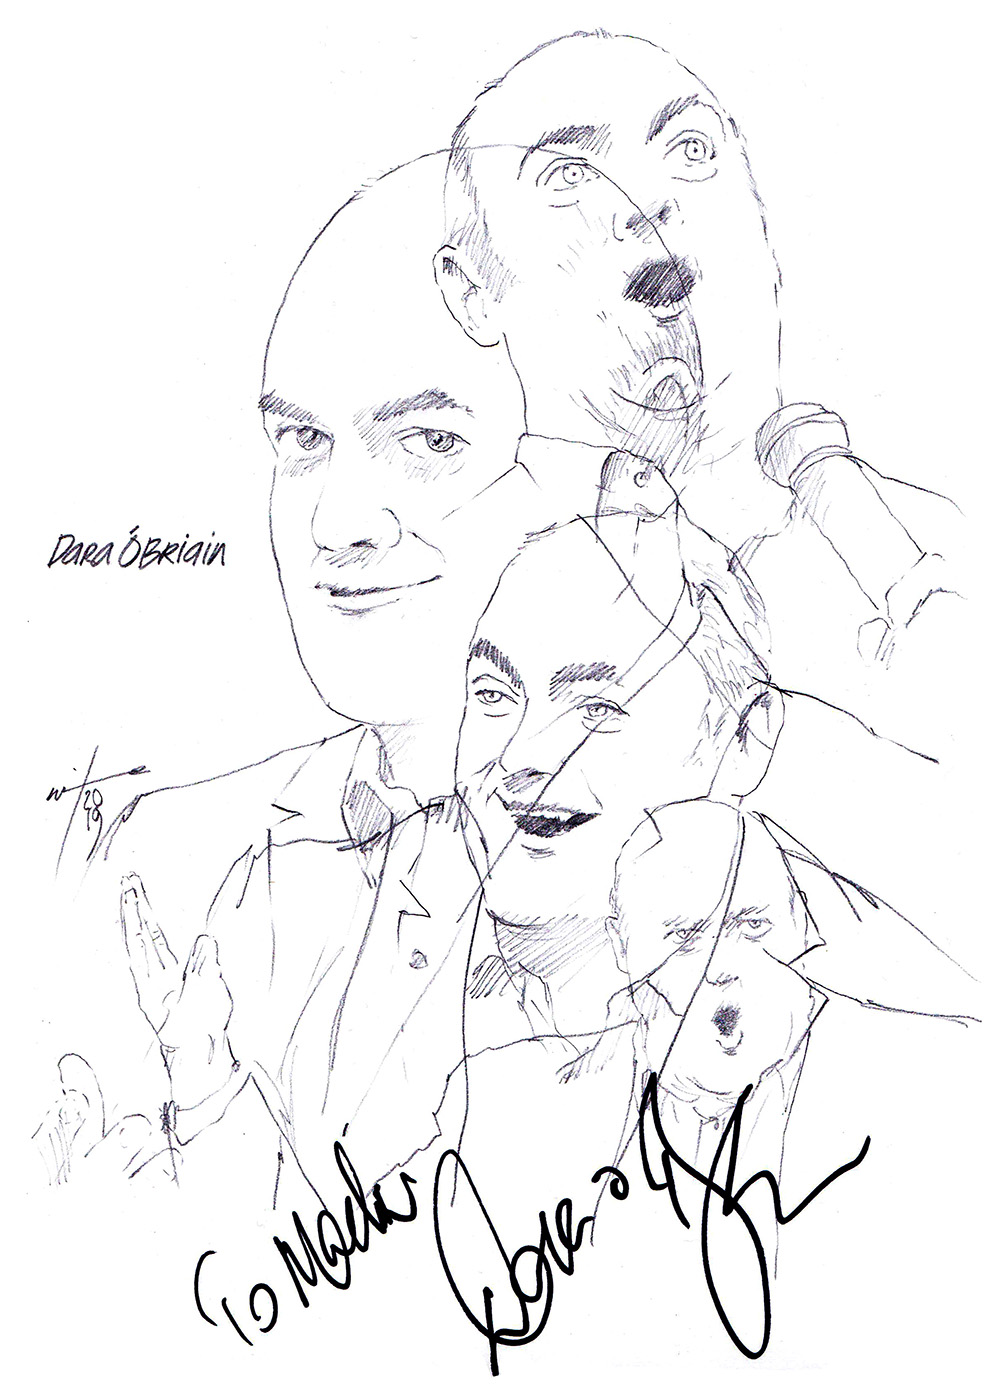 Autographed drawing of comedian Dara O'Briain